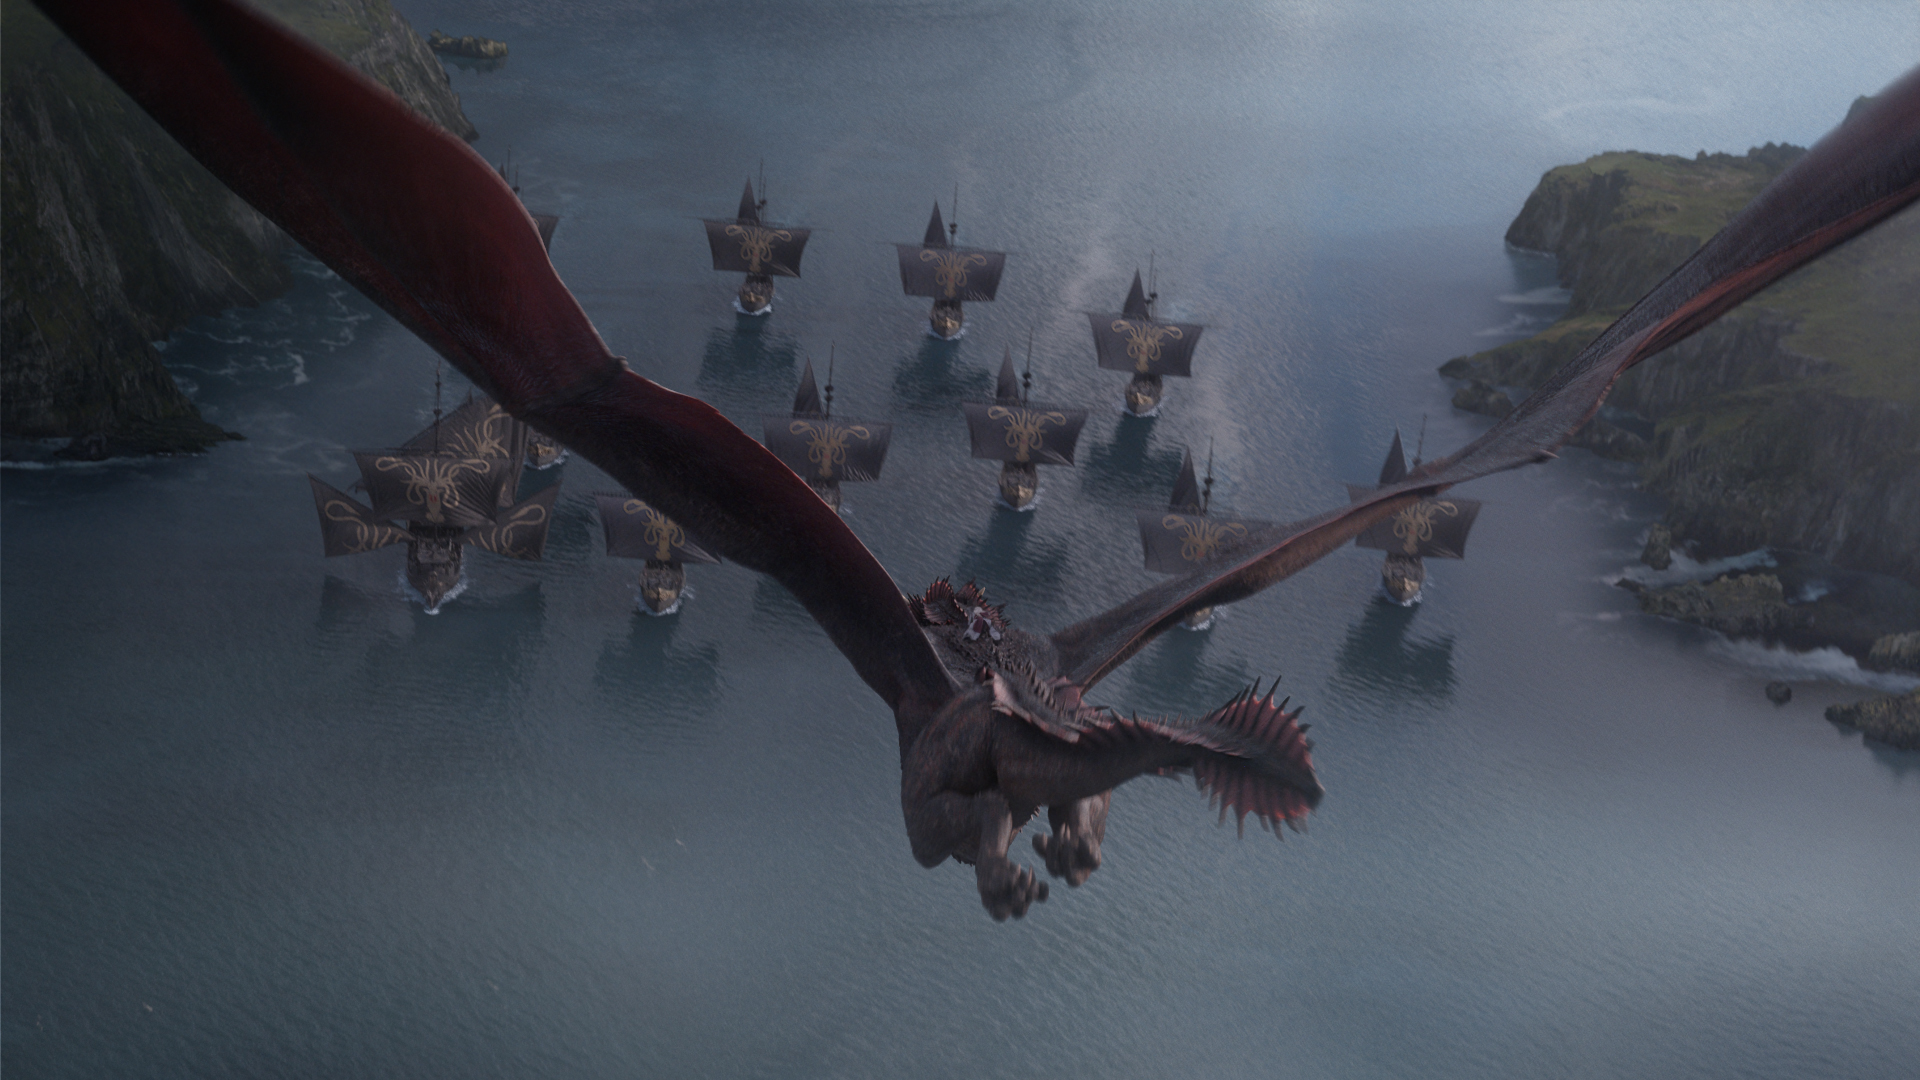 The Simulation of Game of Thrones – fxguide